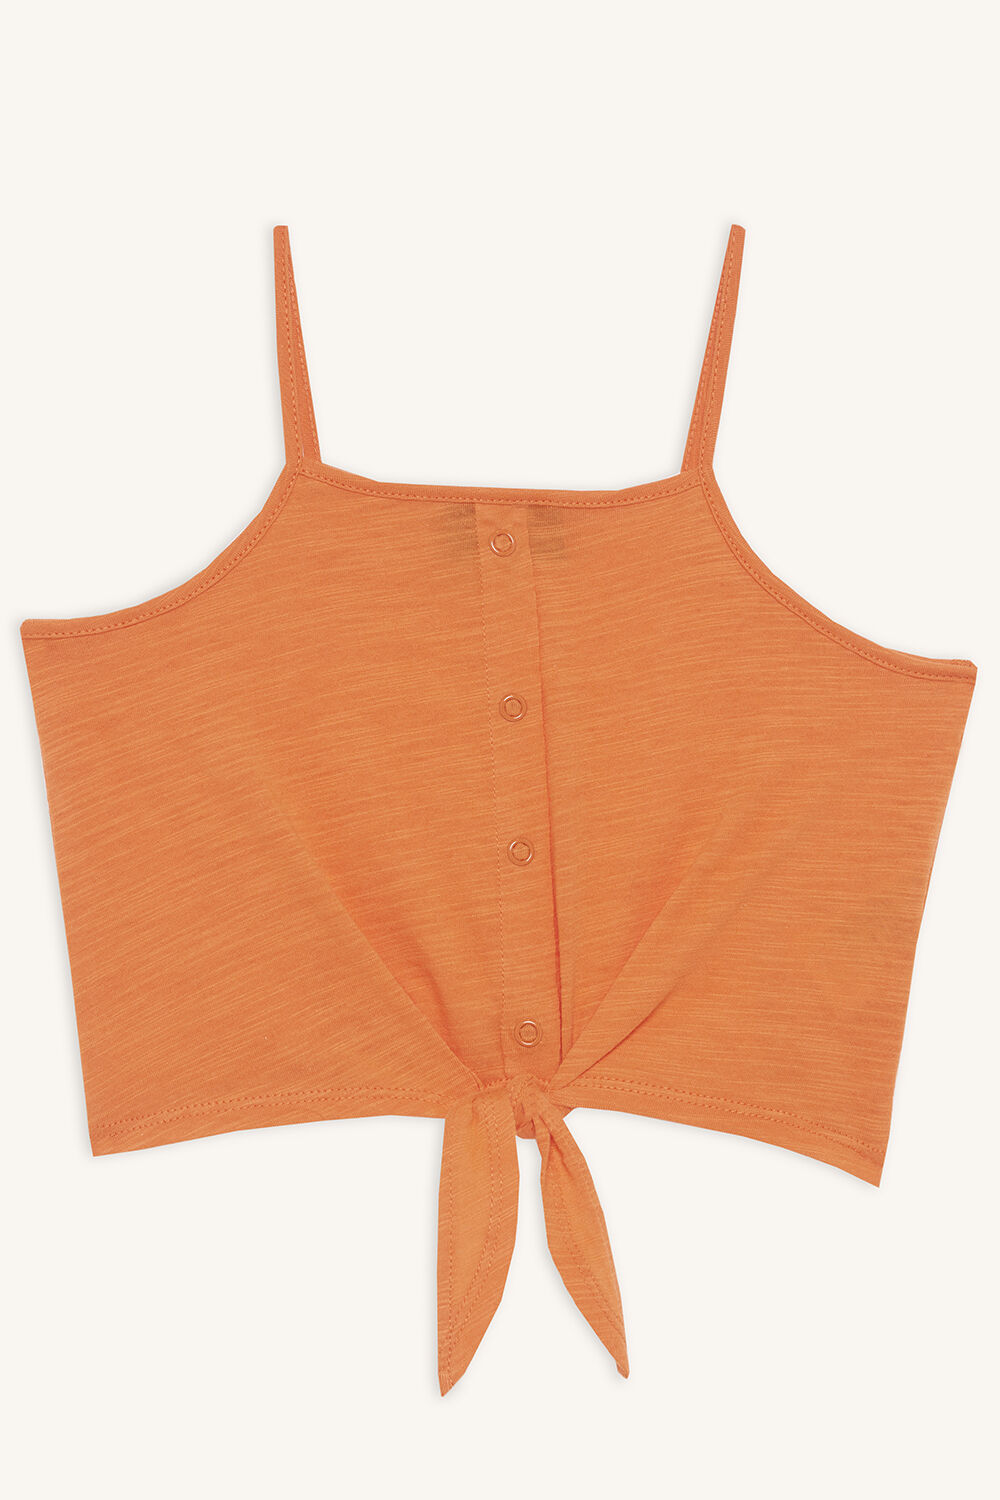 Tween girl LIZA KNOT CAMI TOP in colour MANDARIN RED